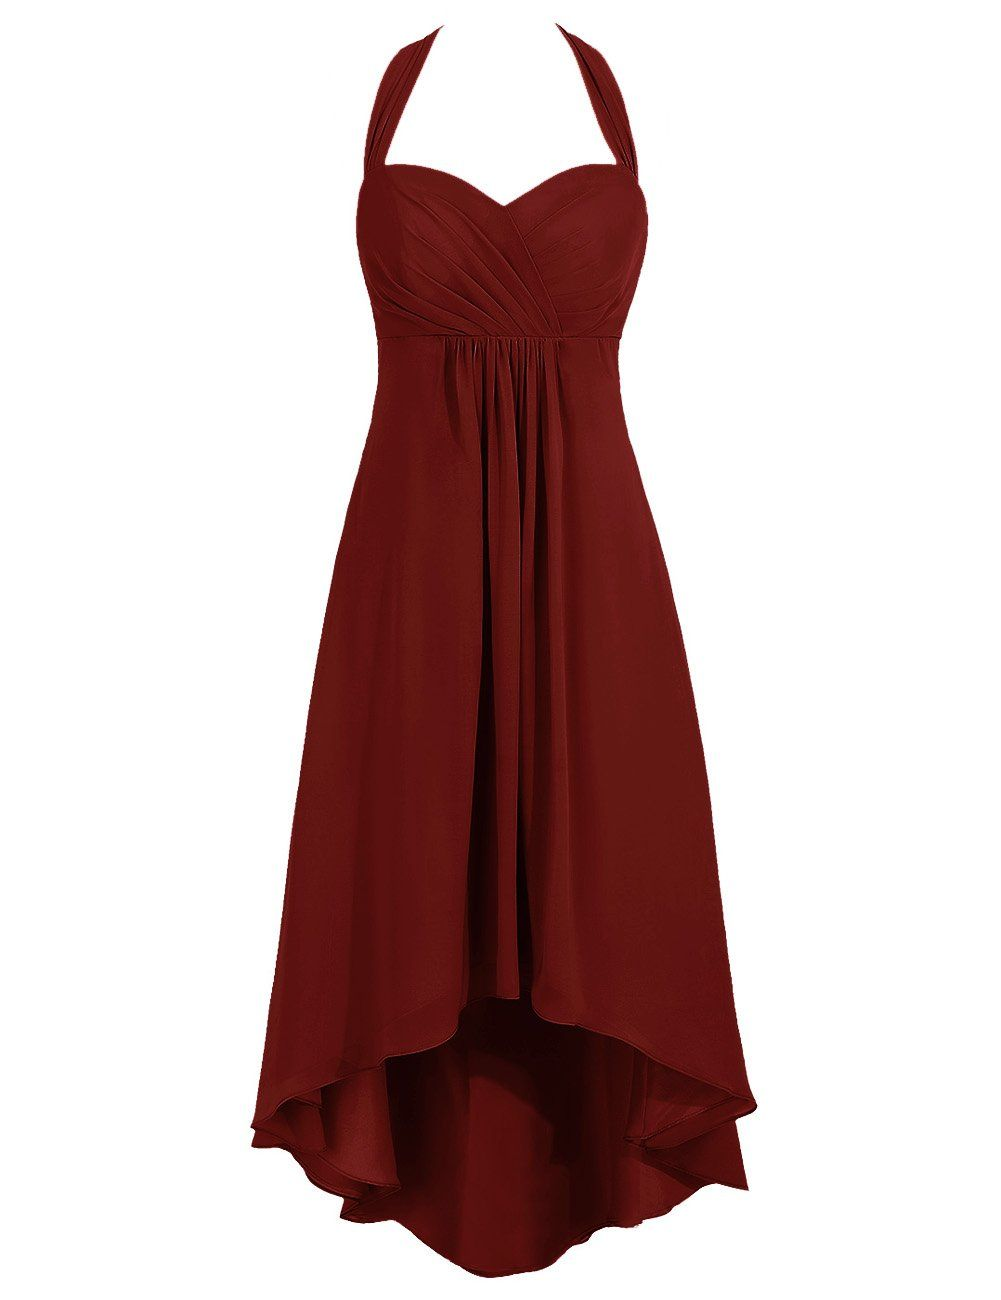 Tidetell chiffon halter party prom dress high low bridesmaid dress tidetell chiffon halter party prom dress high low bridesmaid dress burgundy size 18w ombrellifo Gallery